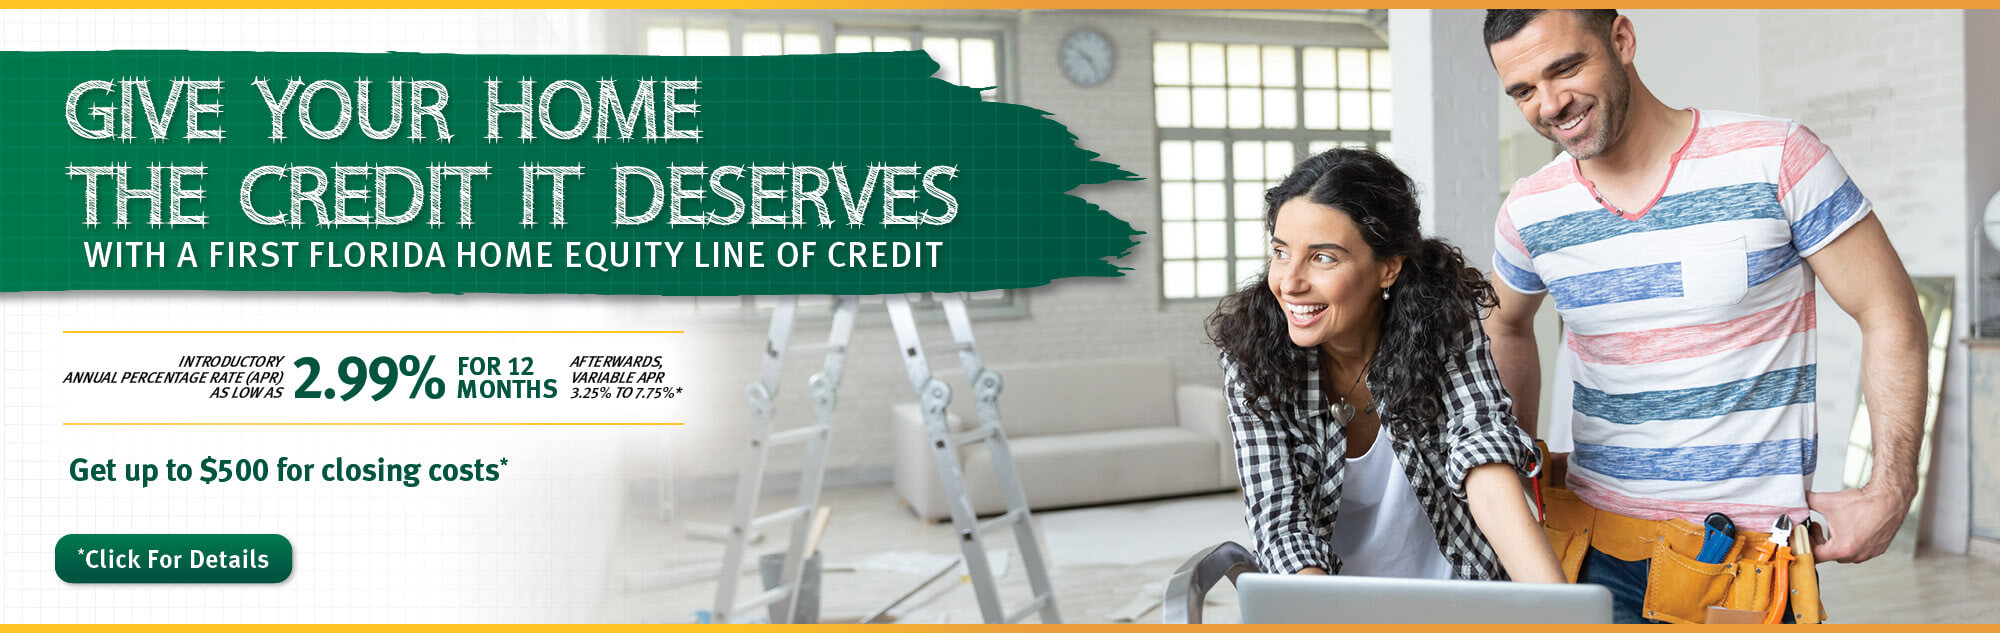 Give your home the credit it deserves with a First Florida Credit Union Home Equity Line of Credit. 2.99% for 12 months. Click for details